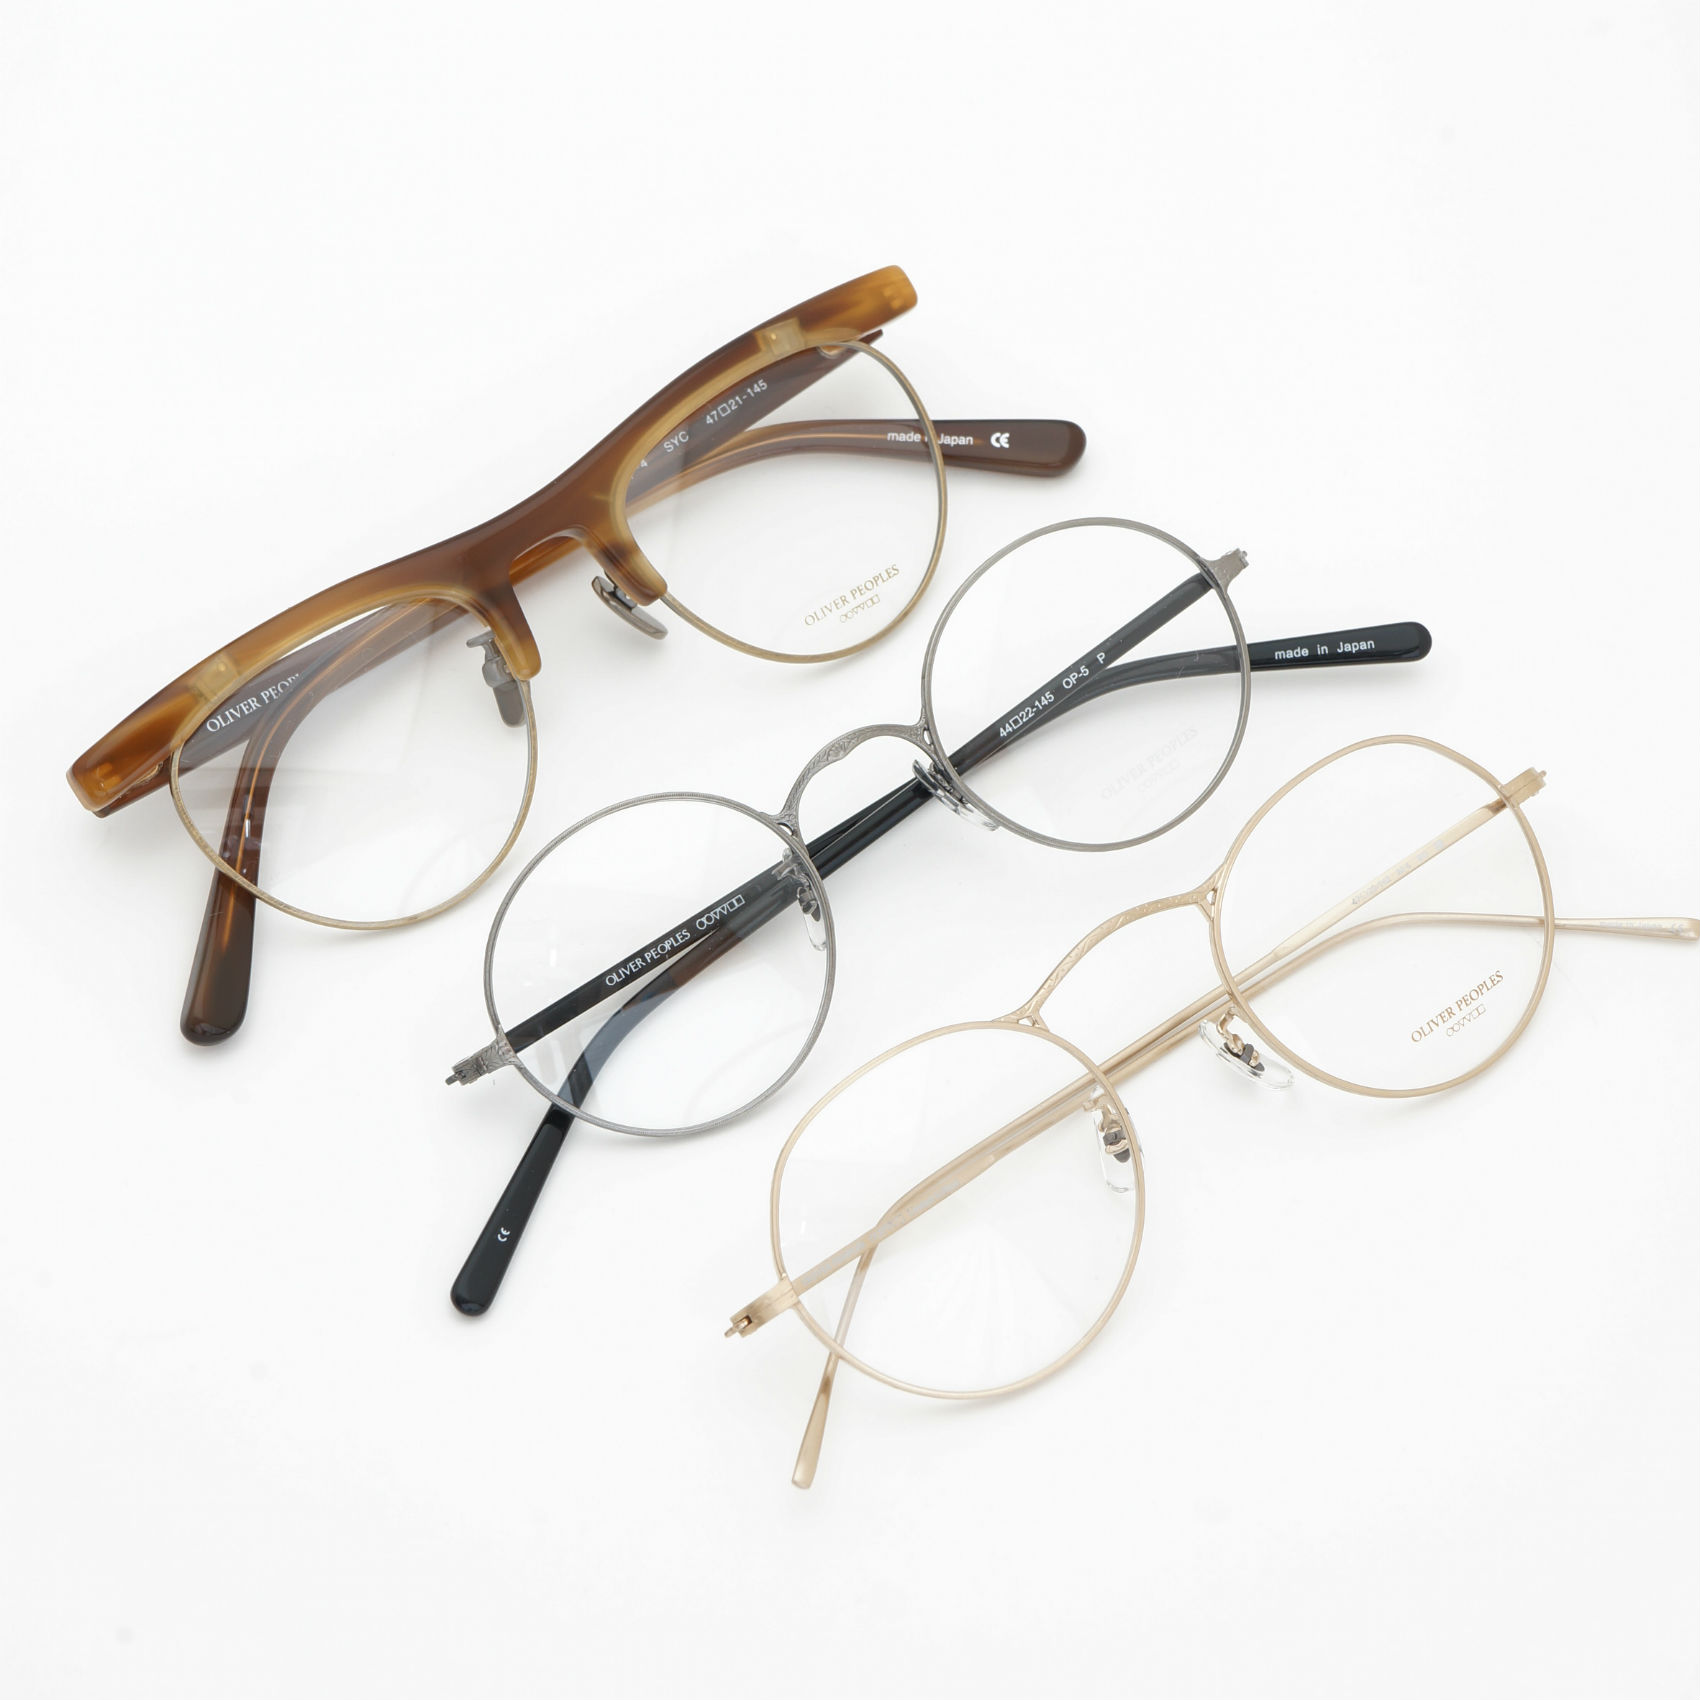 170923-OLIVER PEOPLES-M-4-OP-5-OP-4